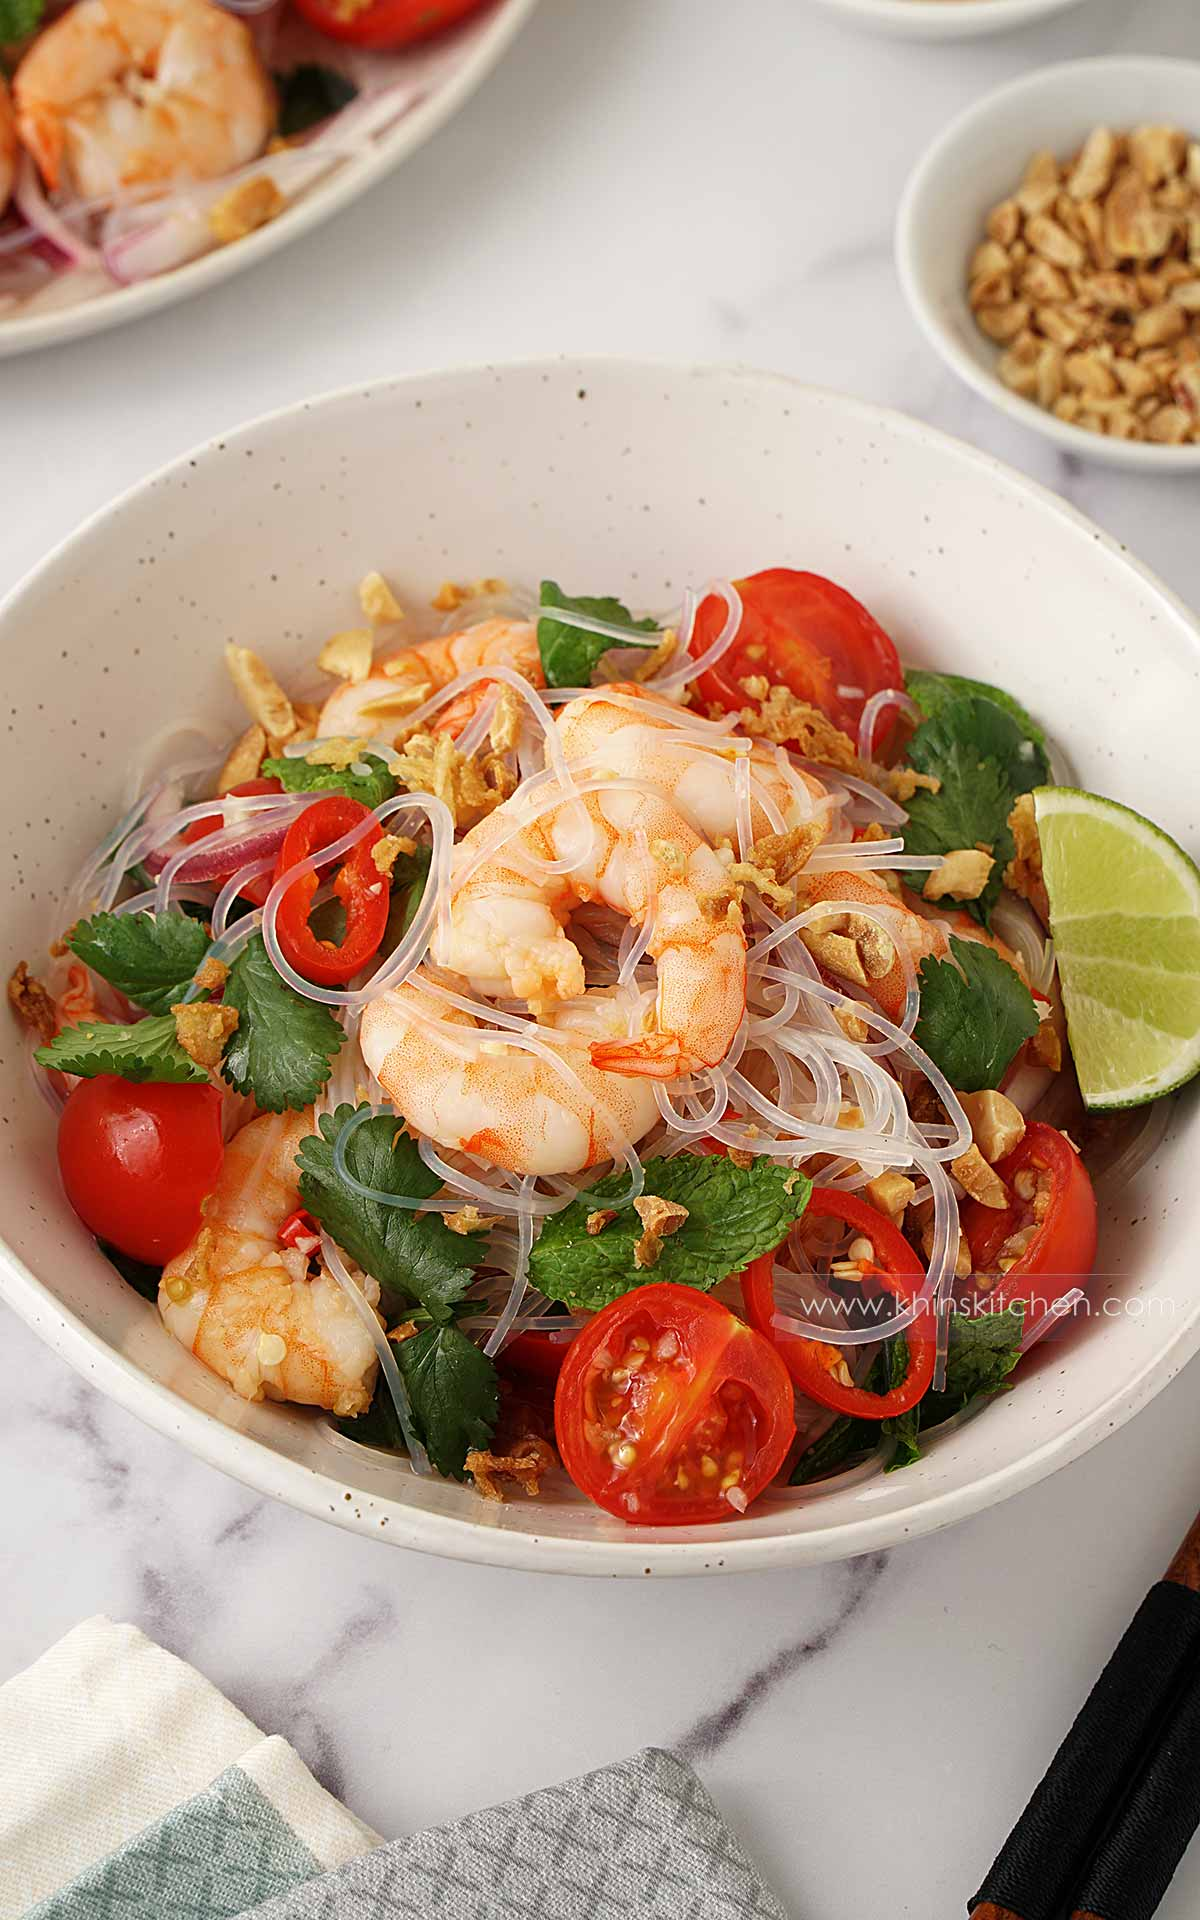 A white bowl containing king prawns, glass noodles, salad vegetables, and lime wedge on the side.